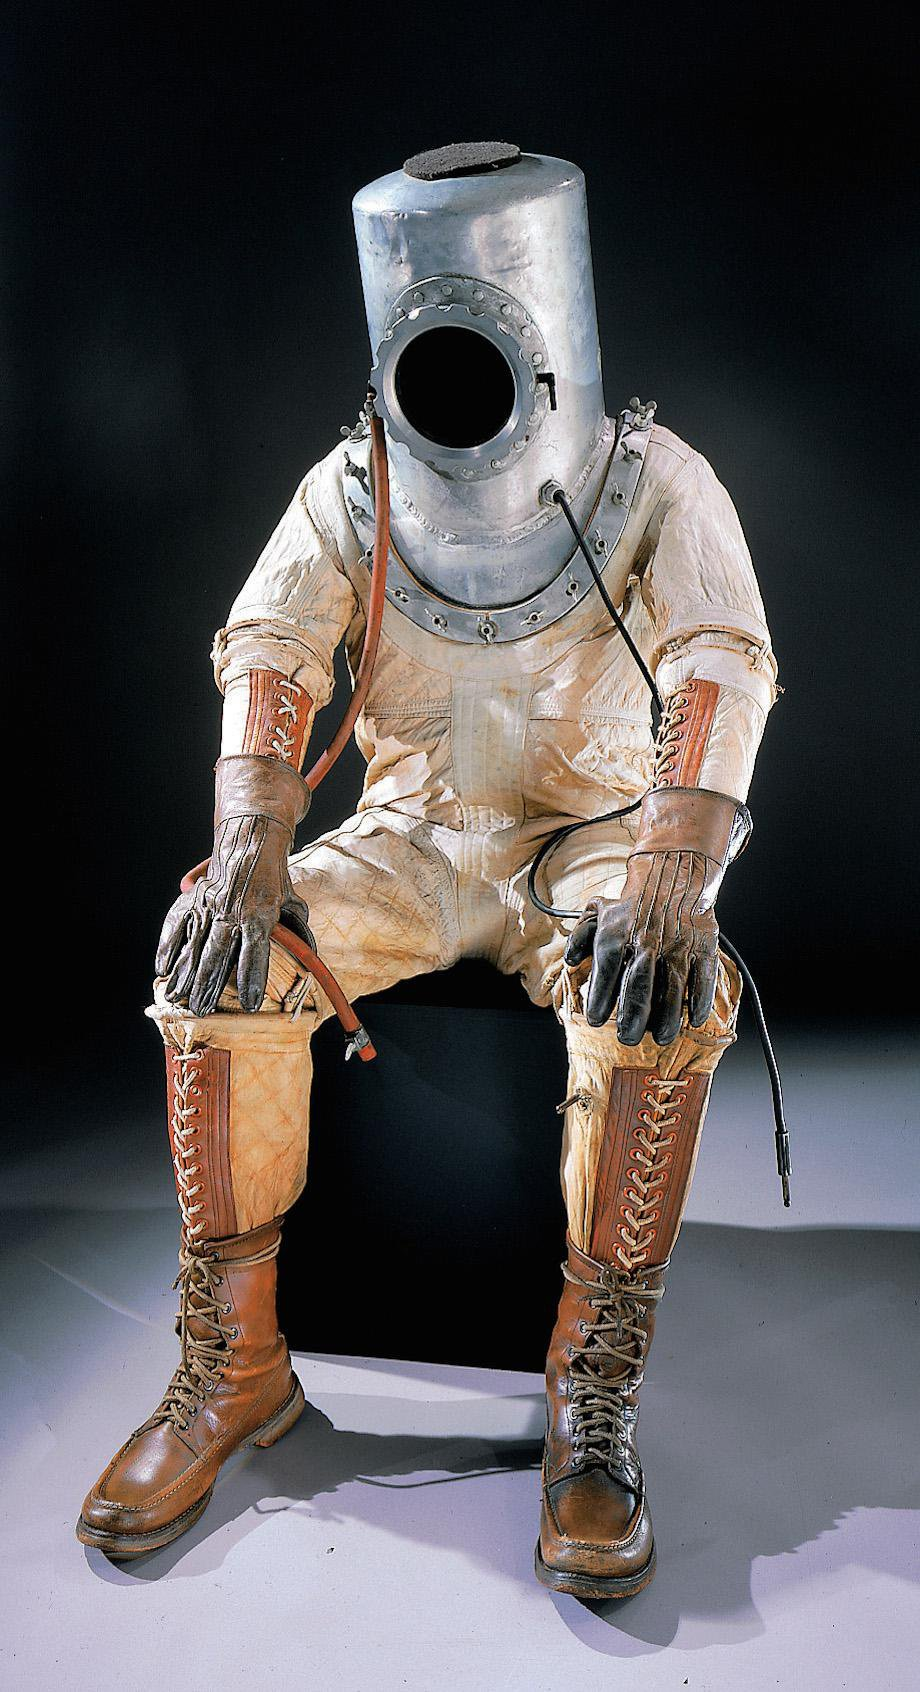 check-out-the-evolution-of-the-space-suit-41-hq-photos-1